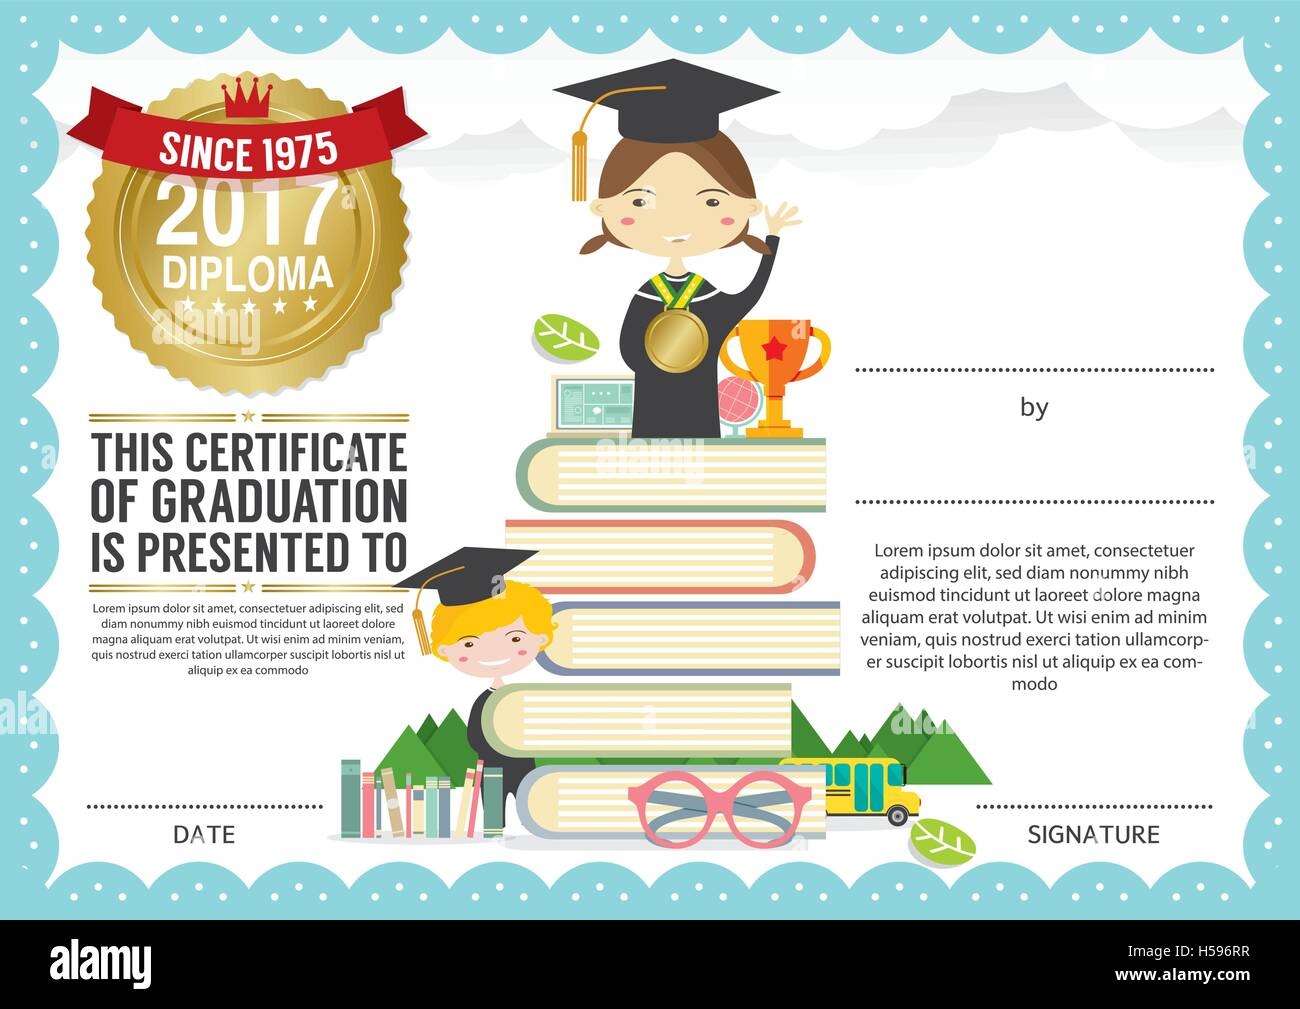 Preschool elementary school kids diploma certificate background preschool elementary school kids diploma certificate background design template yelopaper